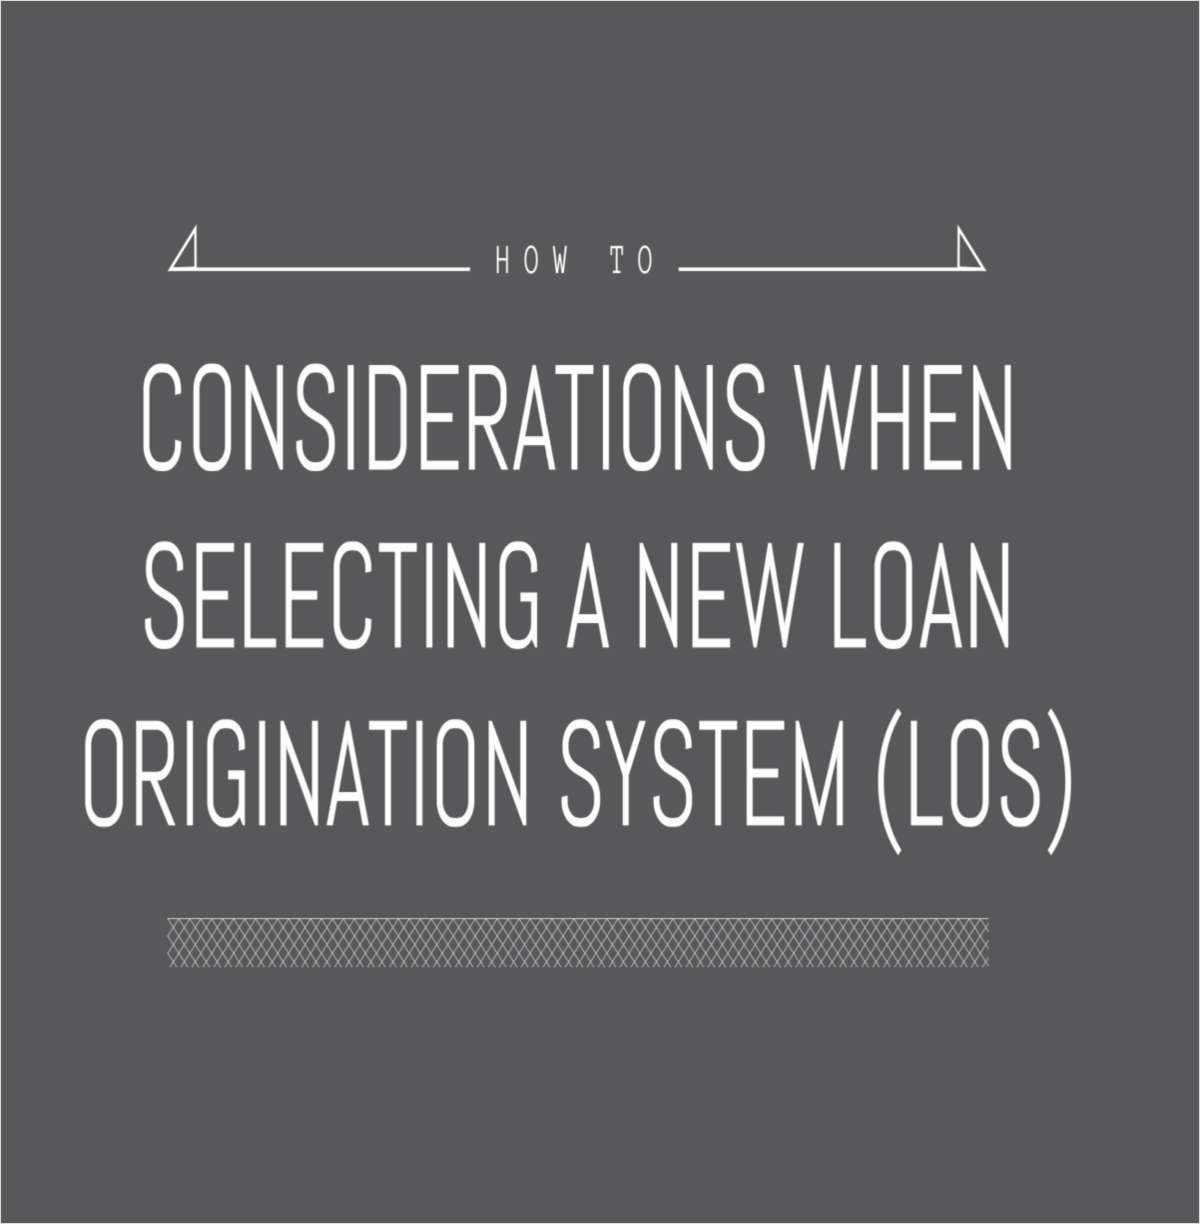 Considerations When Selecting a New Loan Origination System (LOS)